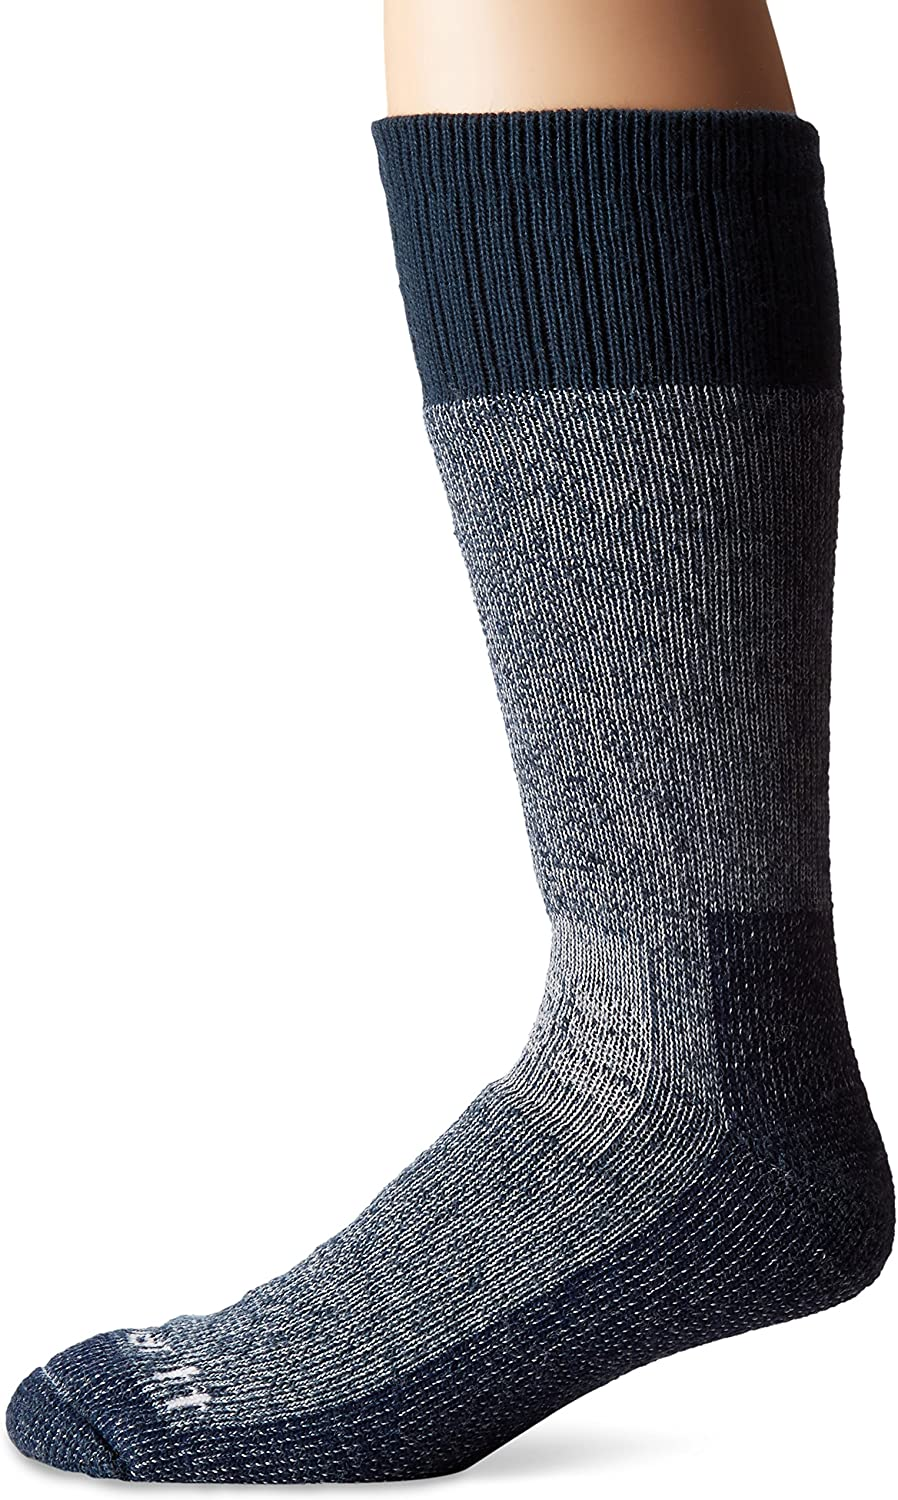 Carhartt Men's Cold Weather Boot Sock